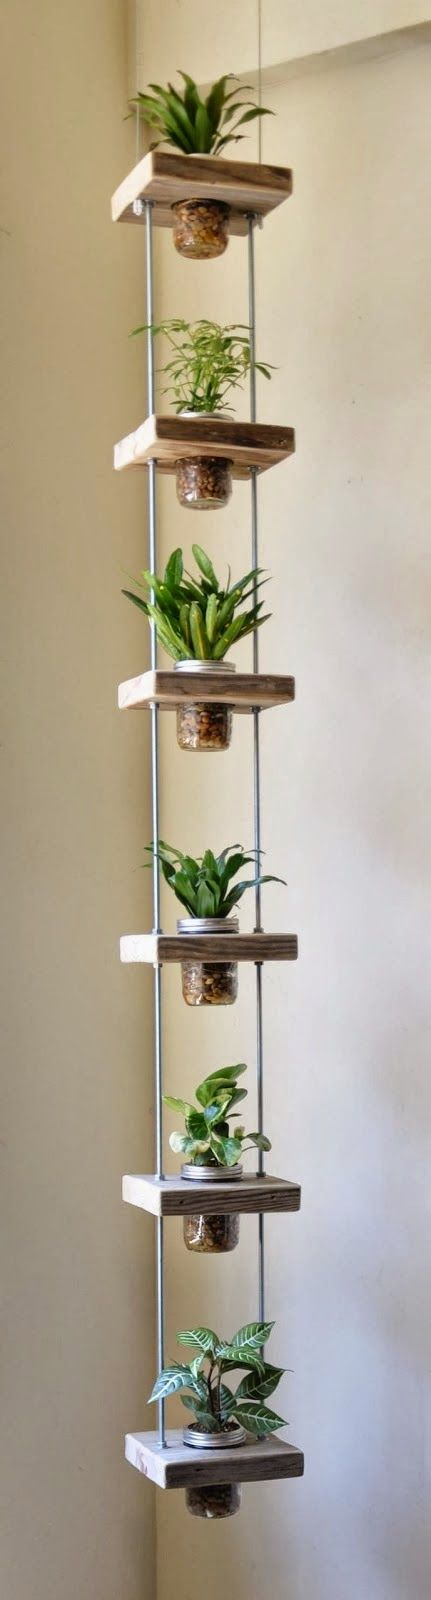 Inspiration Vertical Garden | Totaly Outdoors